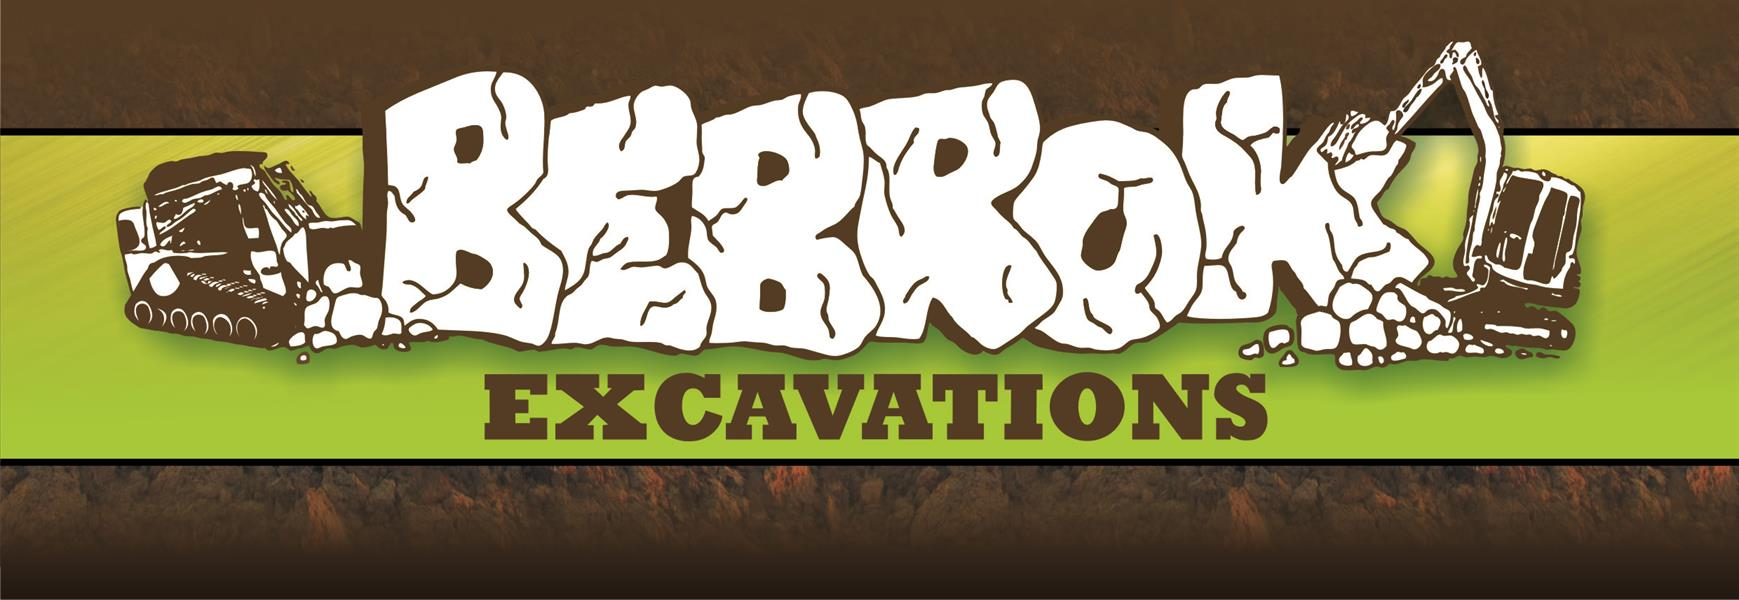 Bebrok Excavations